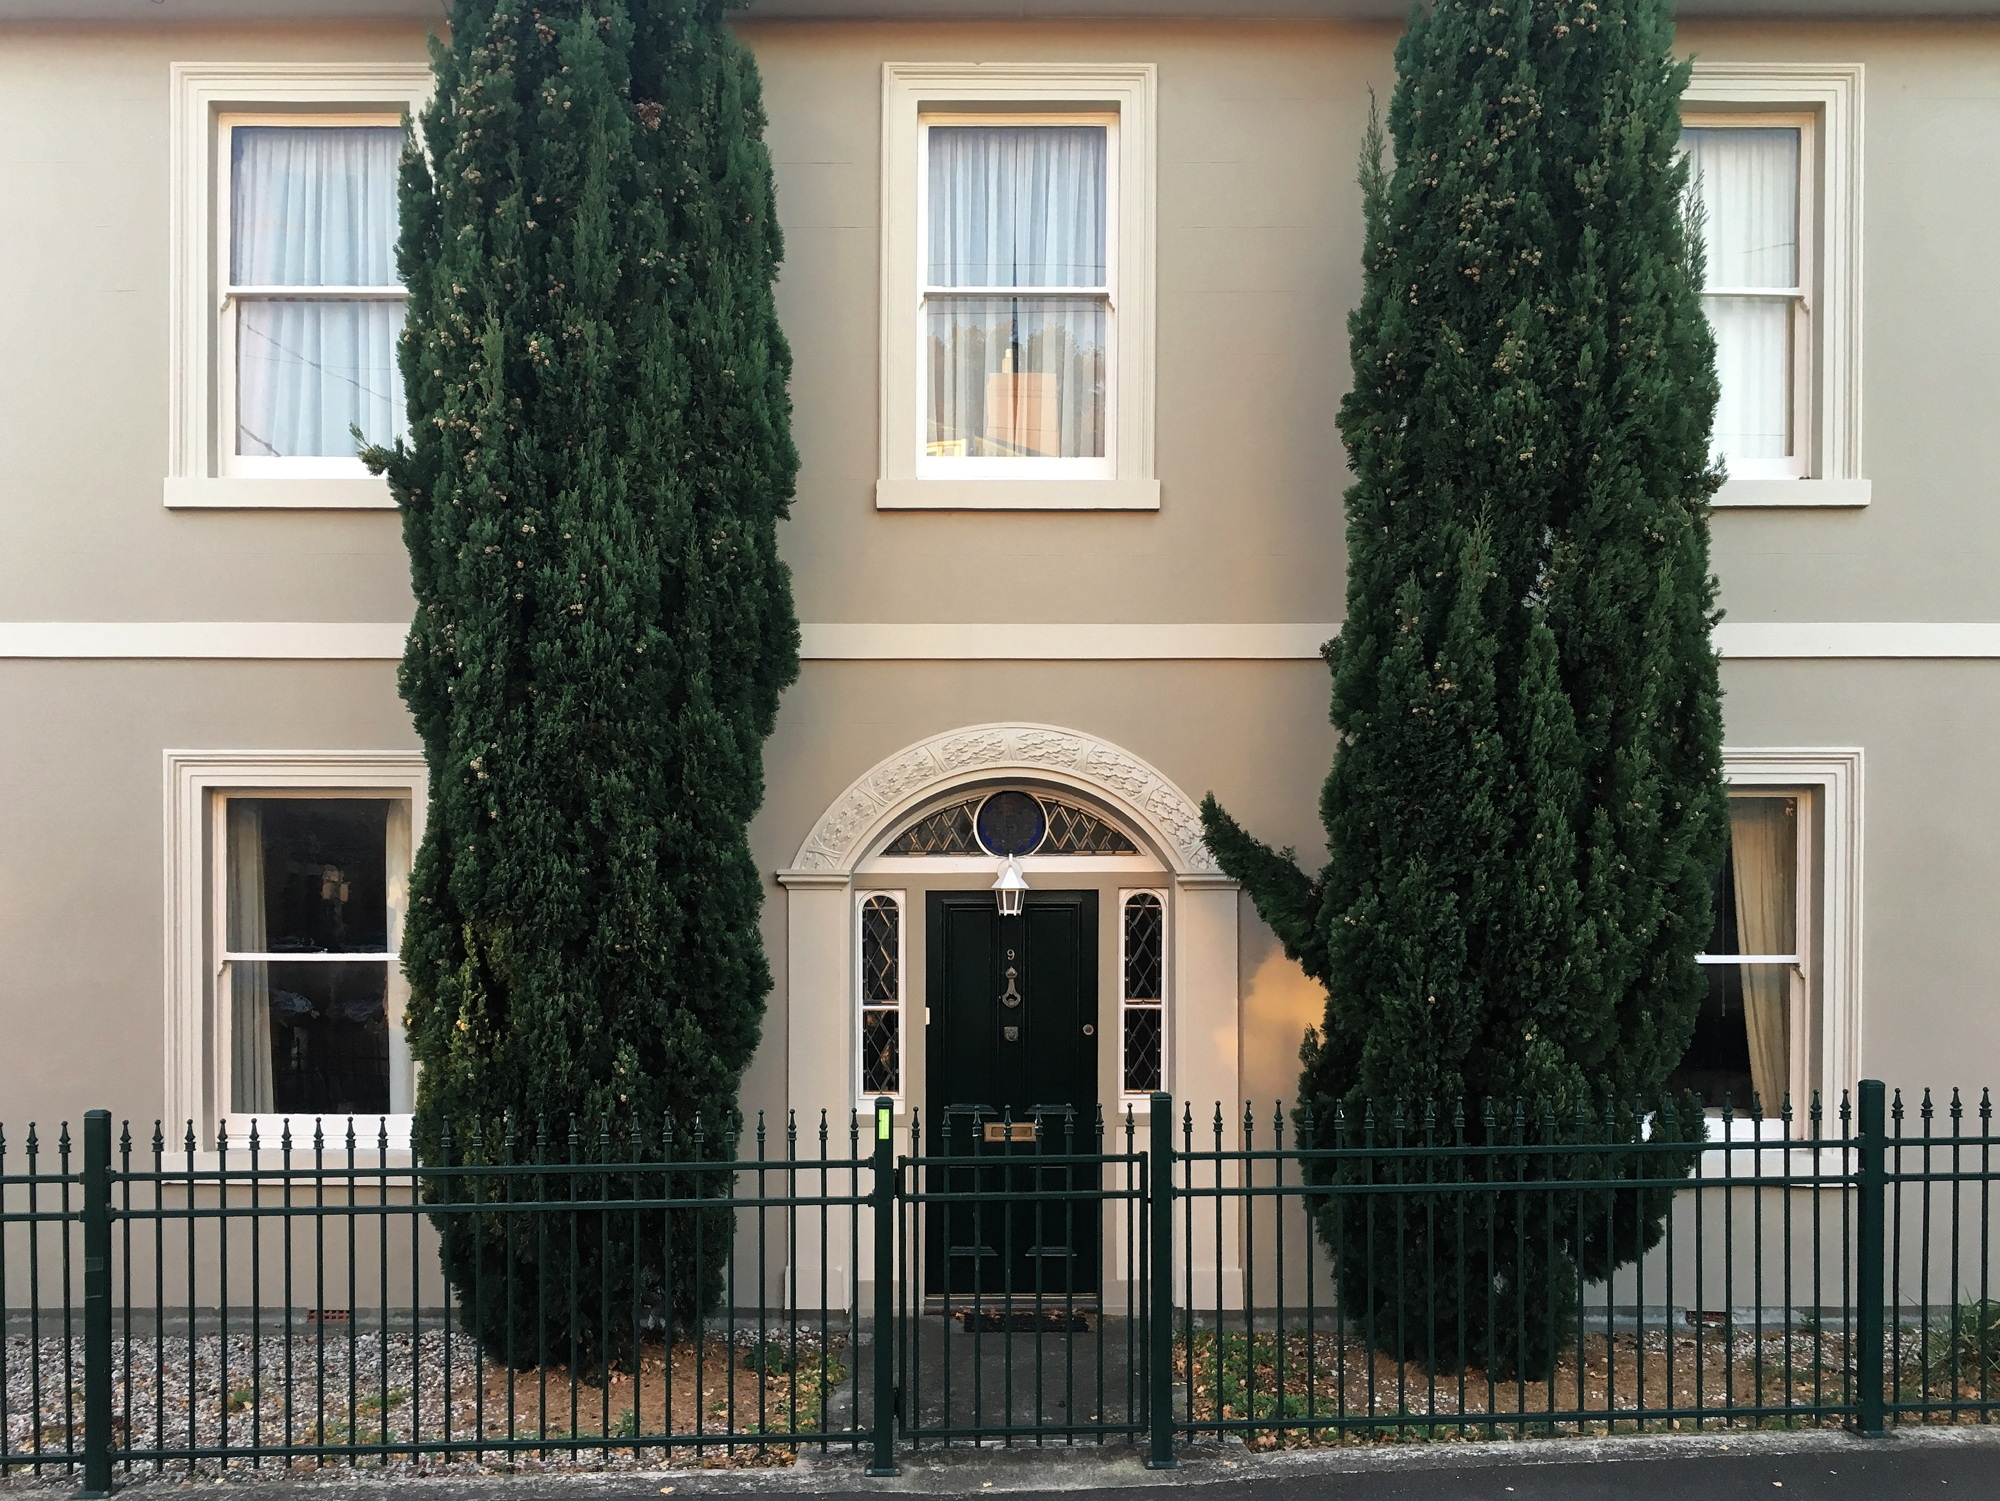 McGregor St house as it is now